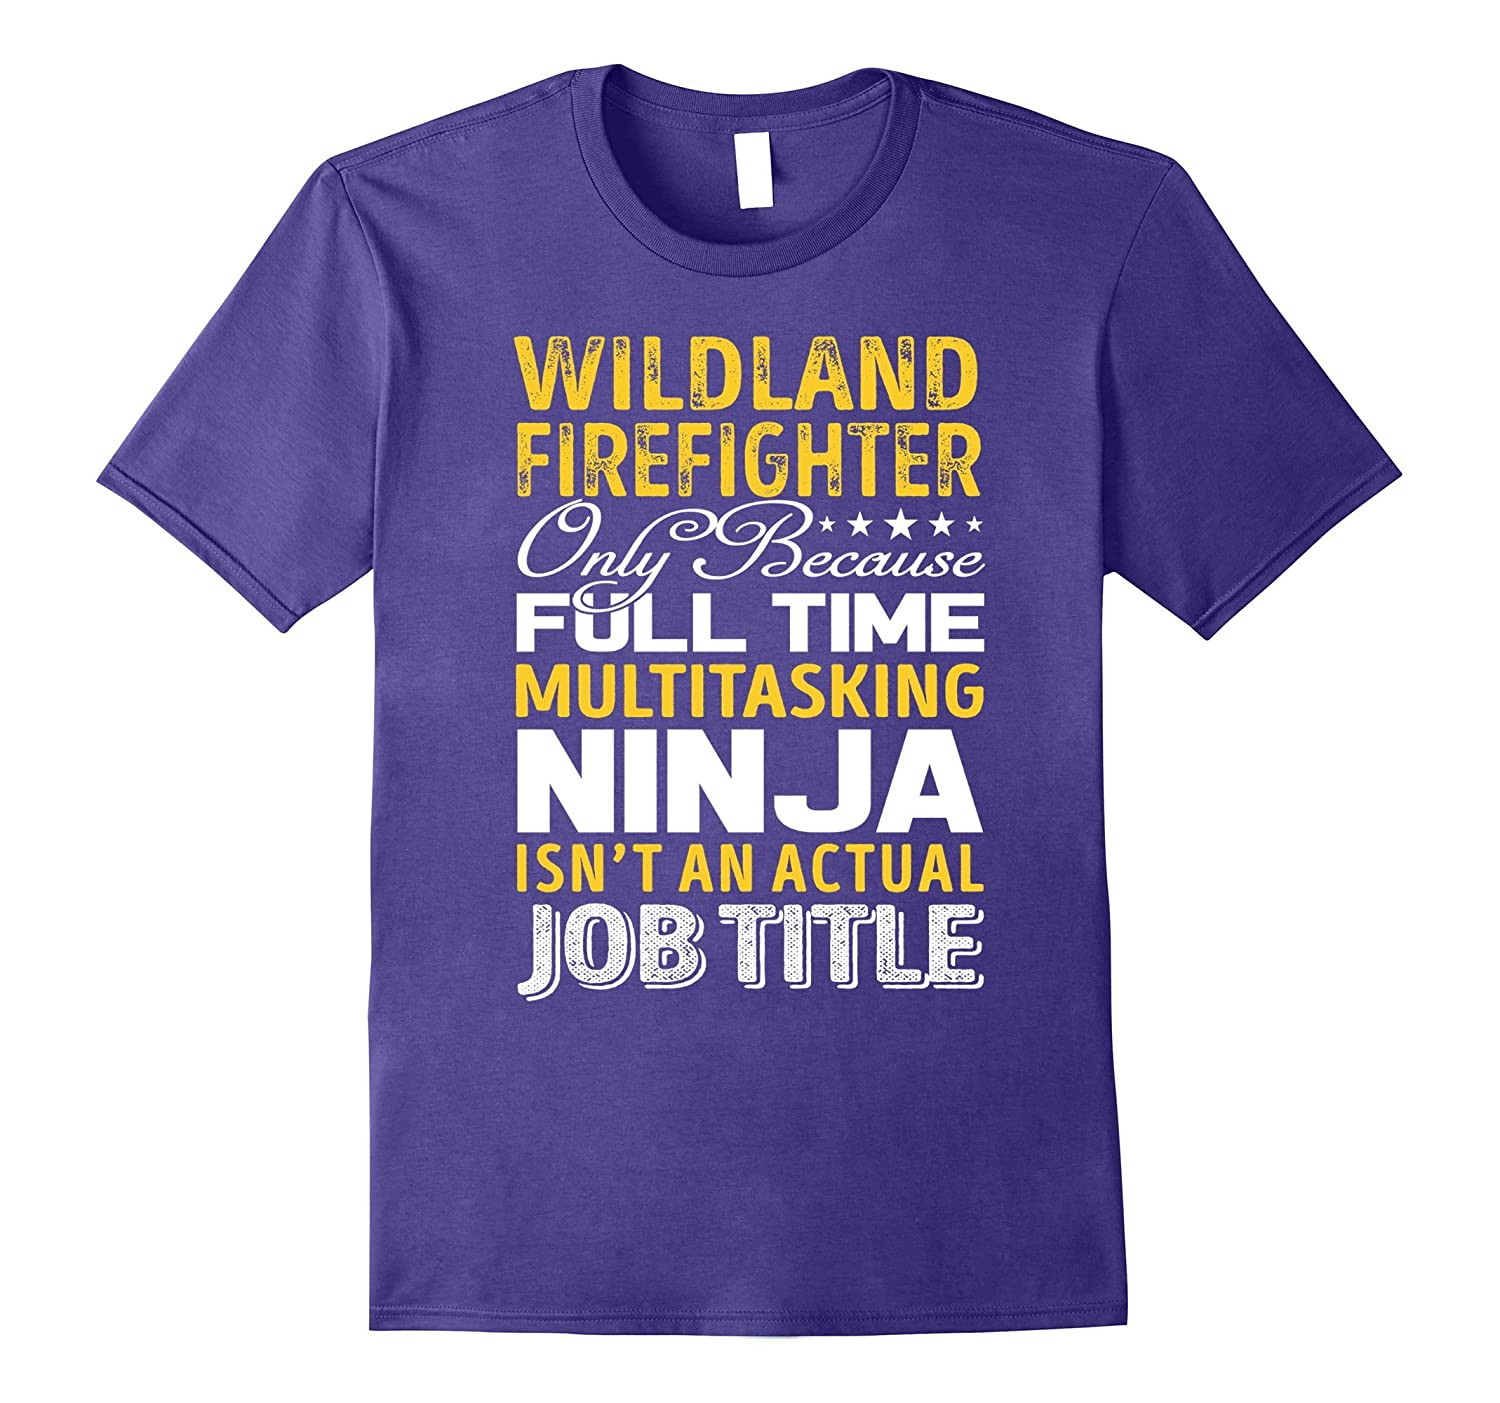 Wildland Firefighter Is Not An Actual Job Title TShirt-TJ